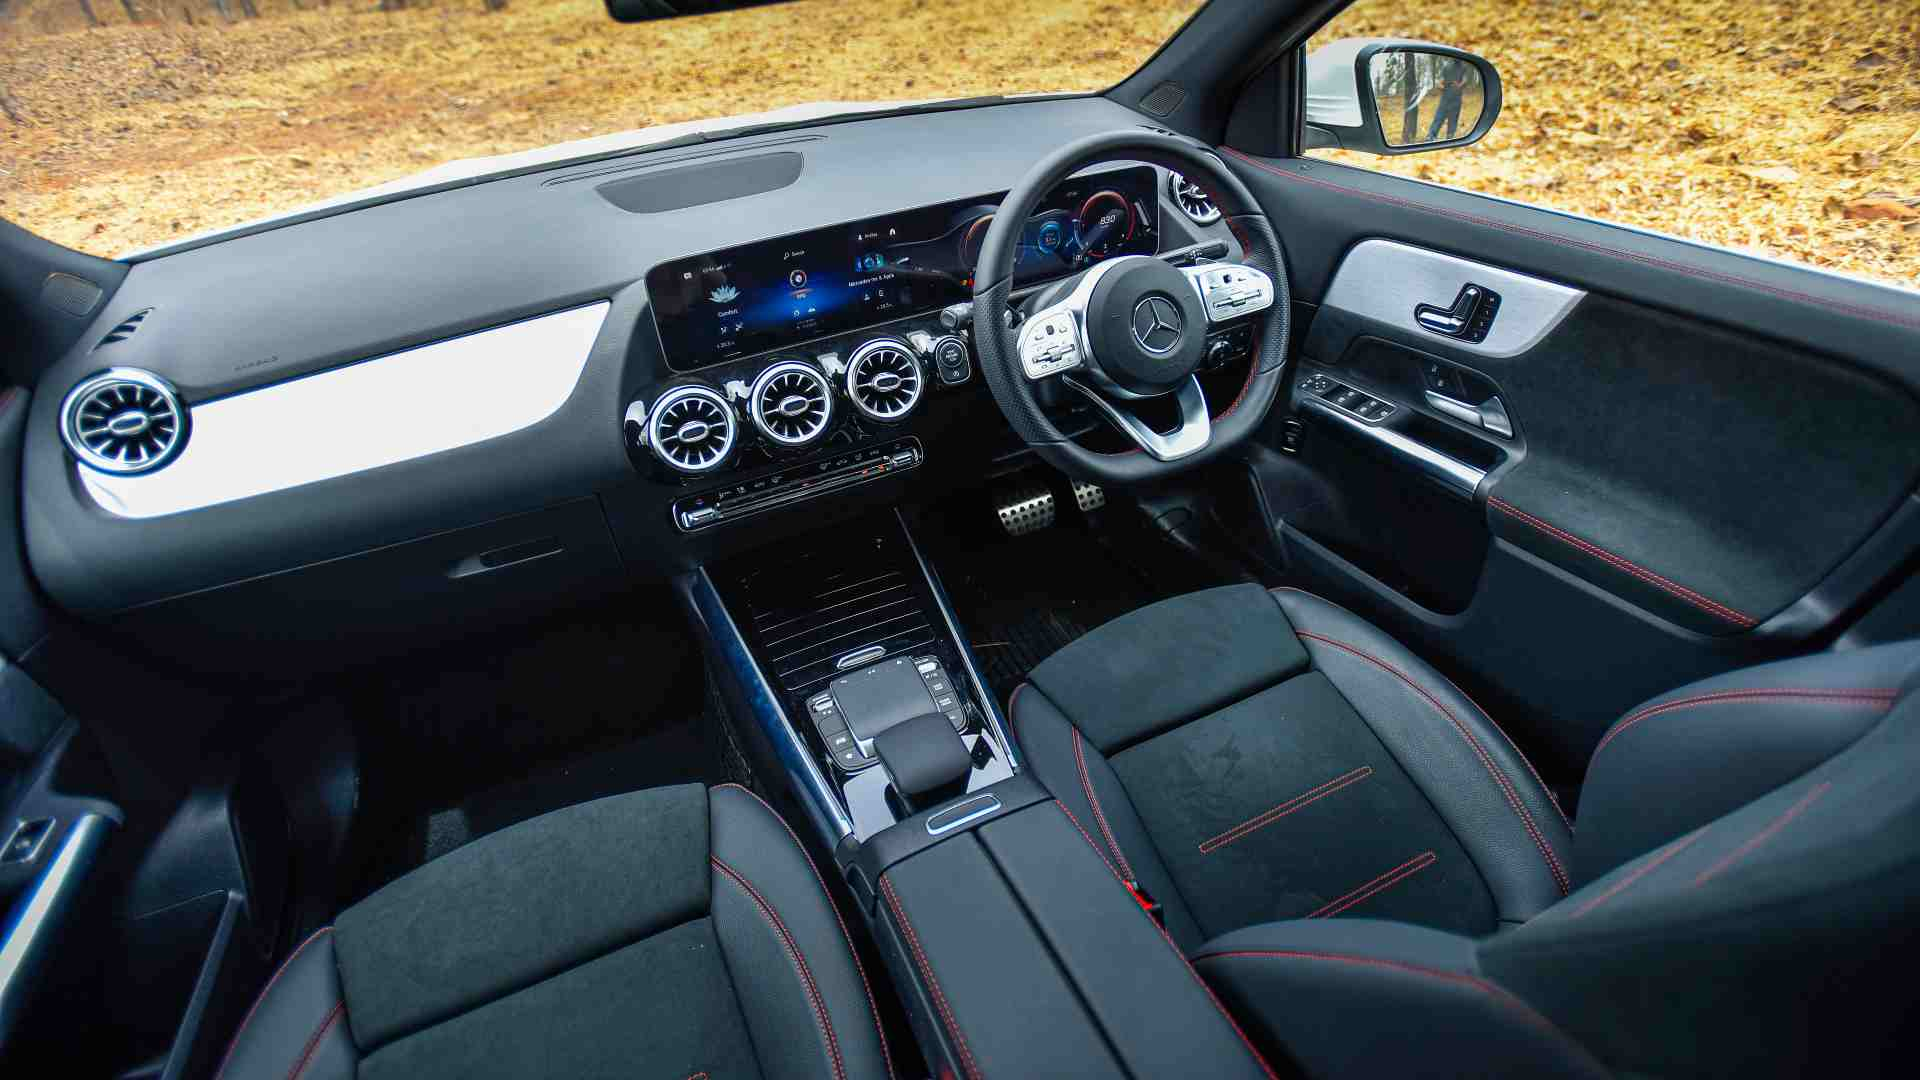 Twin-screen arrangement inside a single, seamless enclosure stands out on the GLA's dashboard. Image: Overdrive/Anis Shaikh